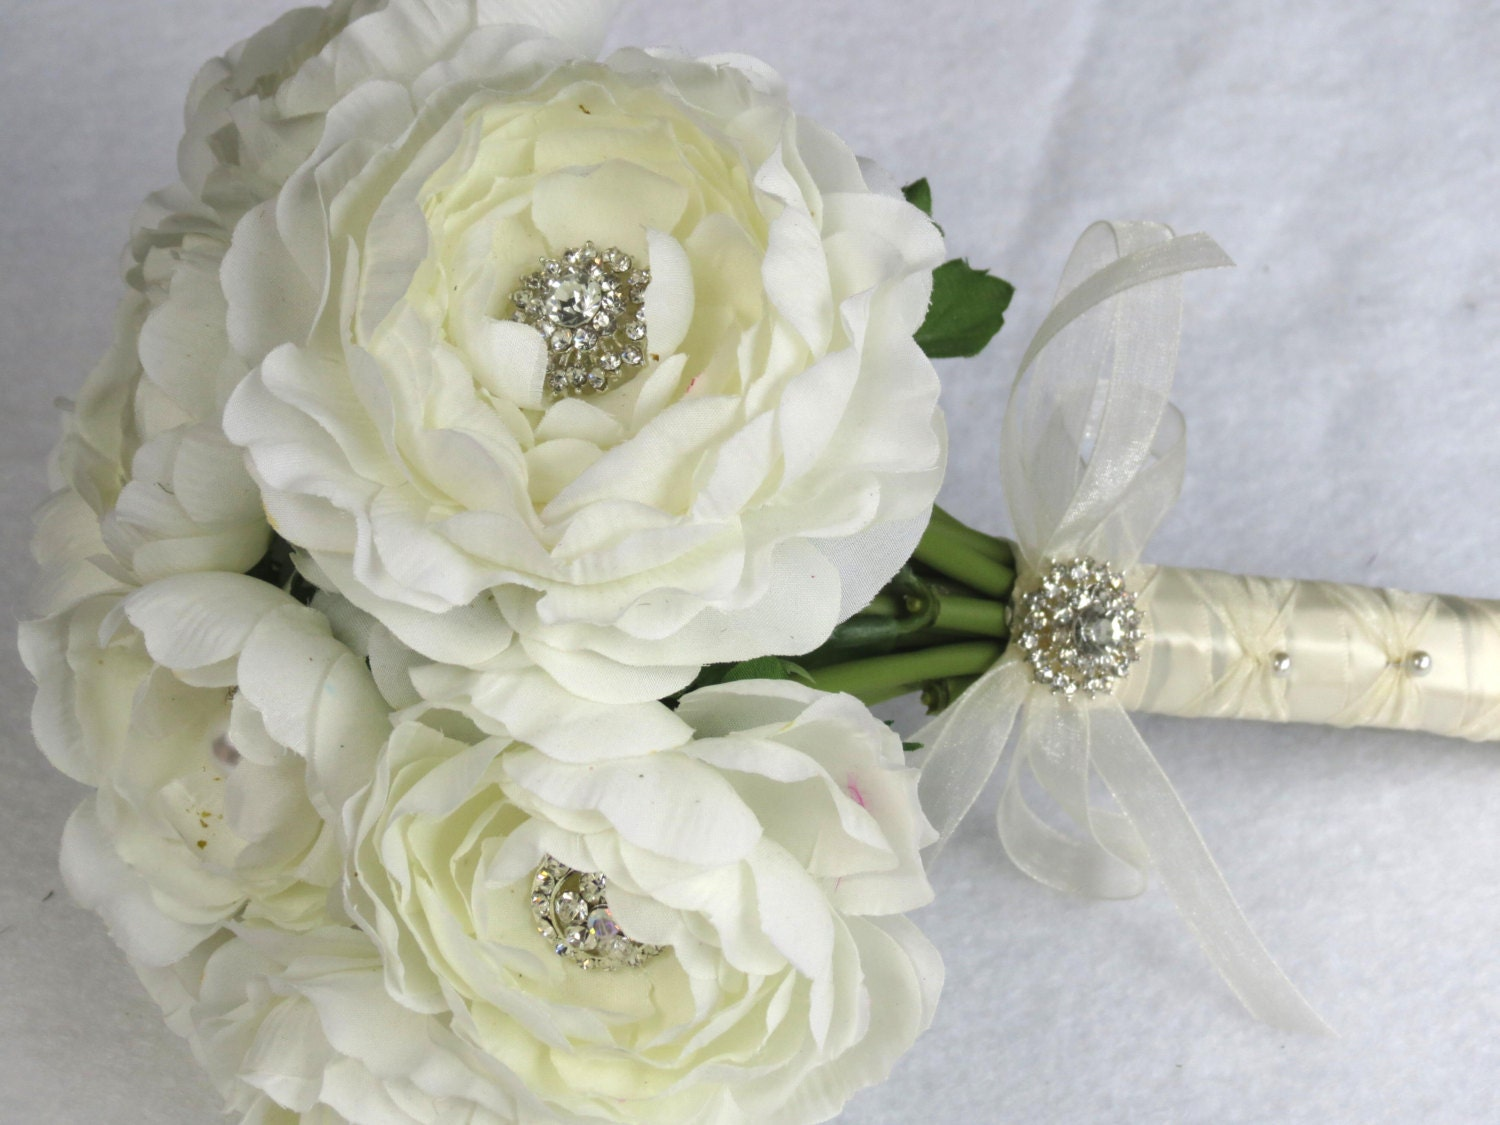 Bridal Bouquet Made Of Jewels : Jewelry ivory bouquet bridal crystals silk